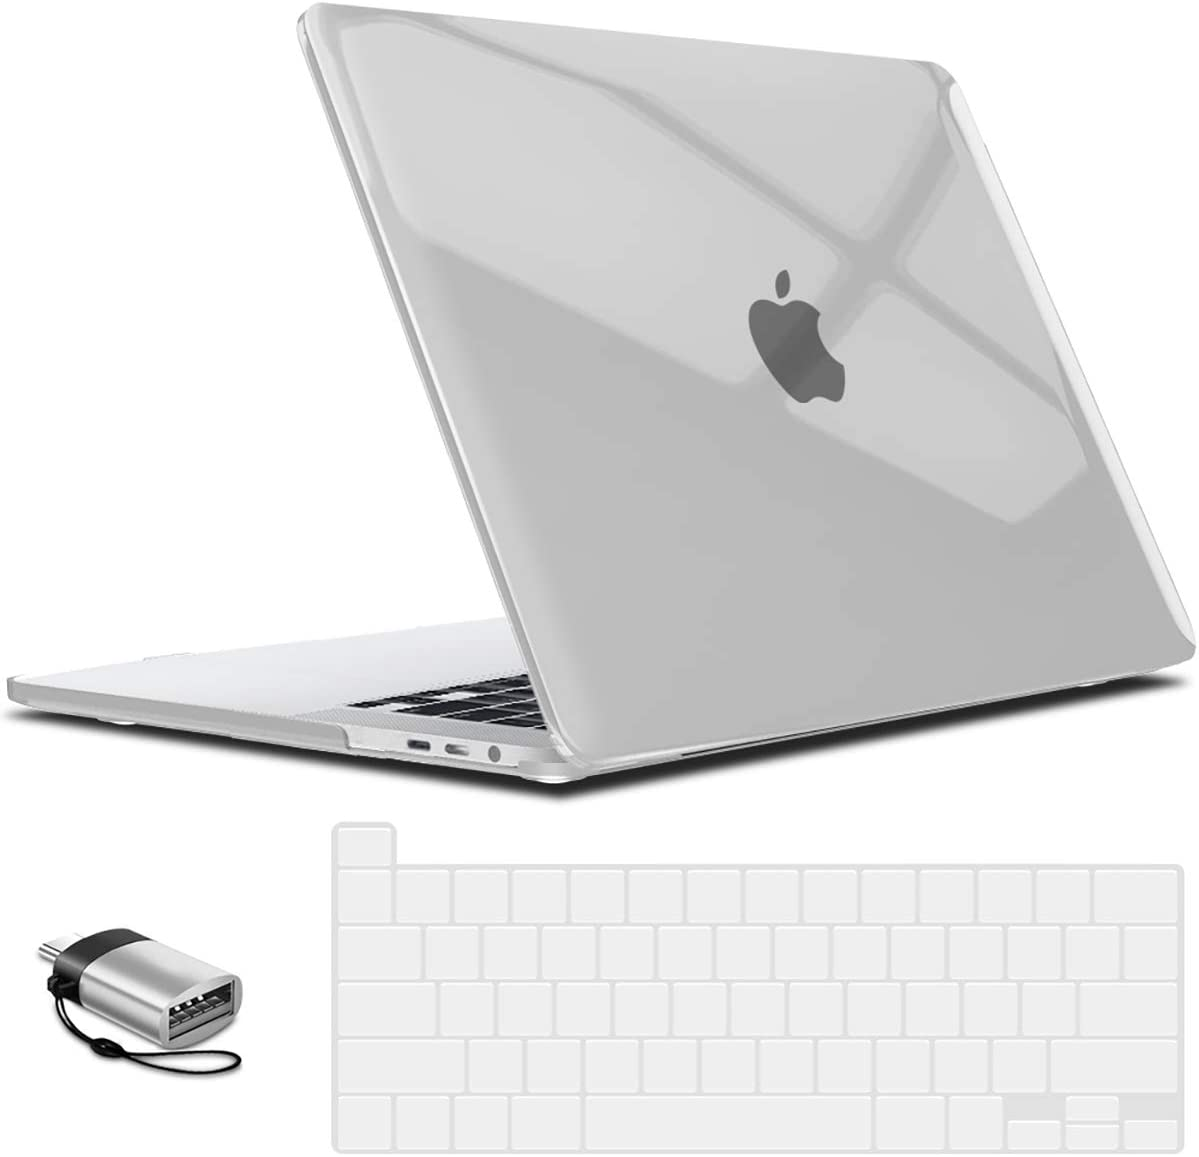 IBENZER MacBook Pro 16 Inch Case A2141 Release 2020 2019, Hard Shell Case with Keyboard Cover & Type C Adapter for Apple Mac Pro 16'' with Touch Bar and Touch ID, Crystal Clear, T16CYCL+1TC